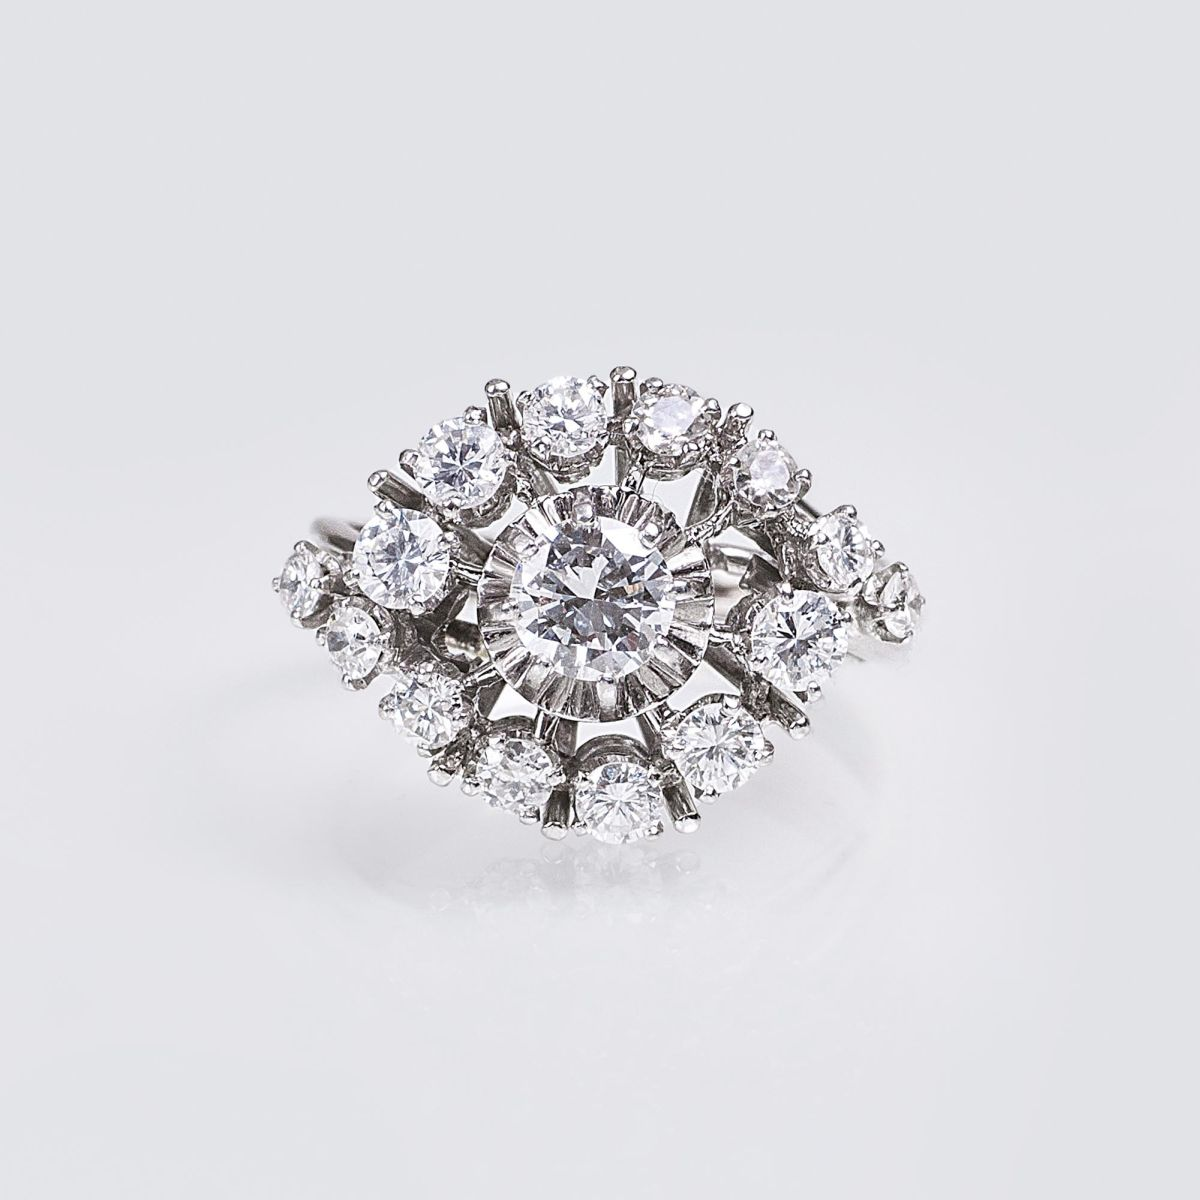 Vintage Brillant-Diamant-Ring